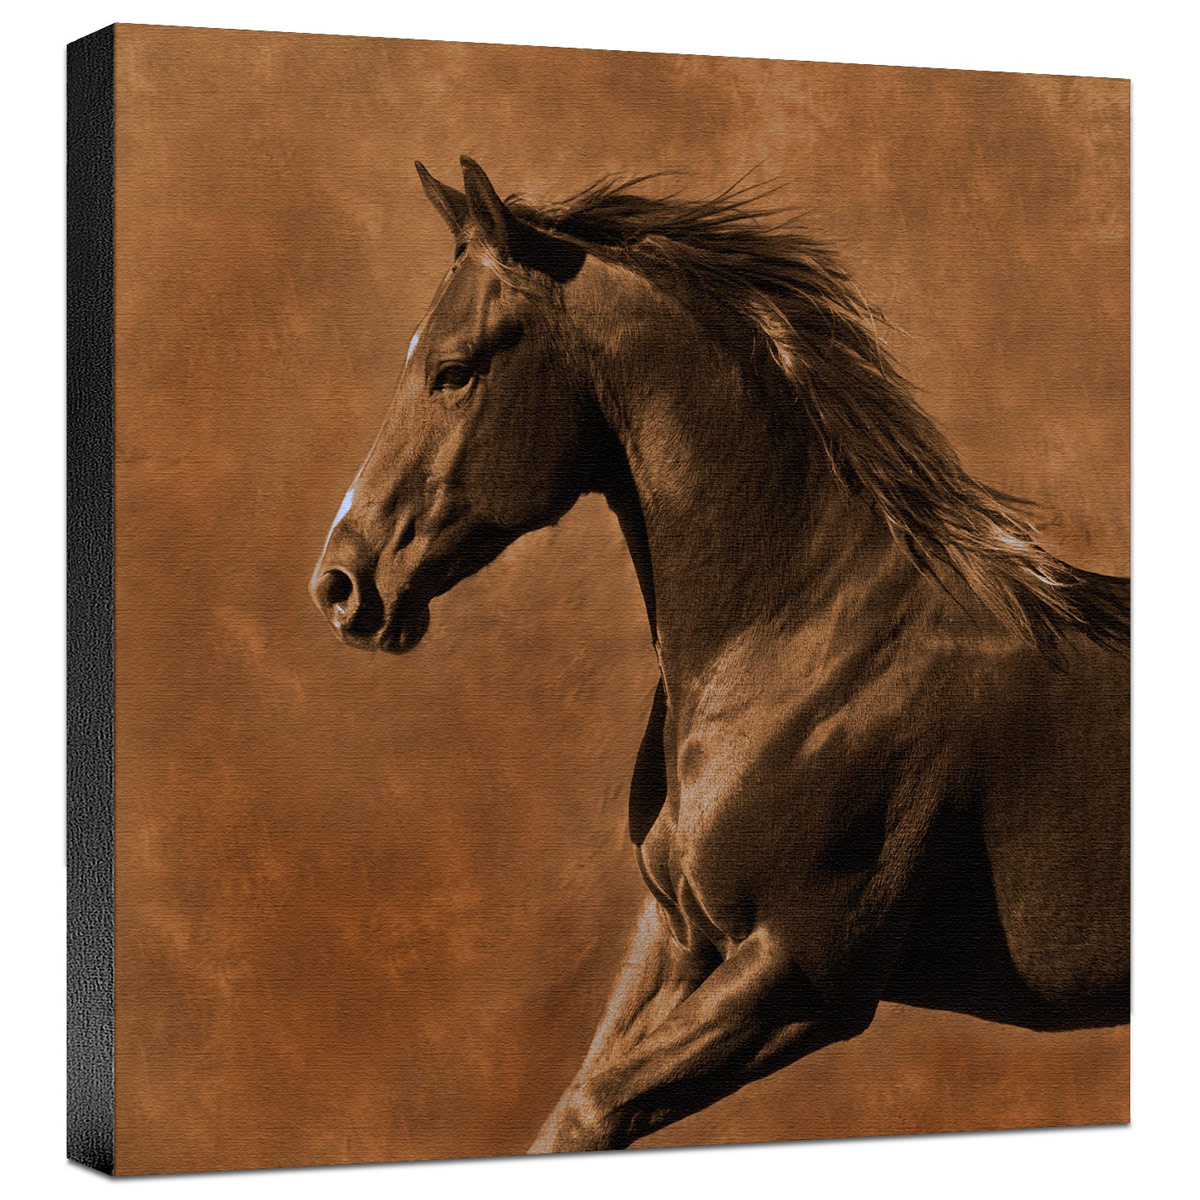 Westward Gallop Gallery Wrapped Canvas